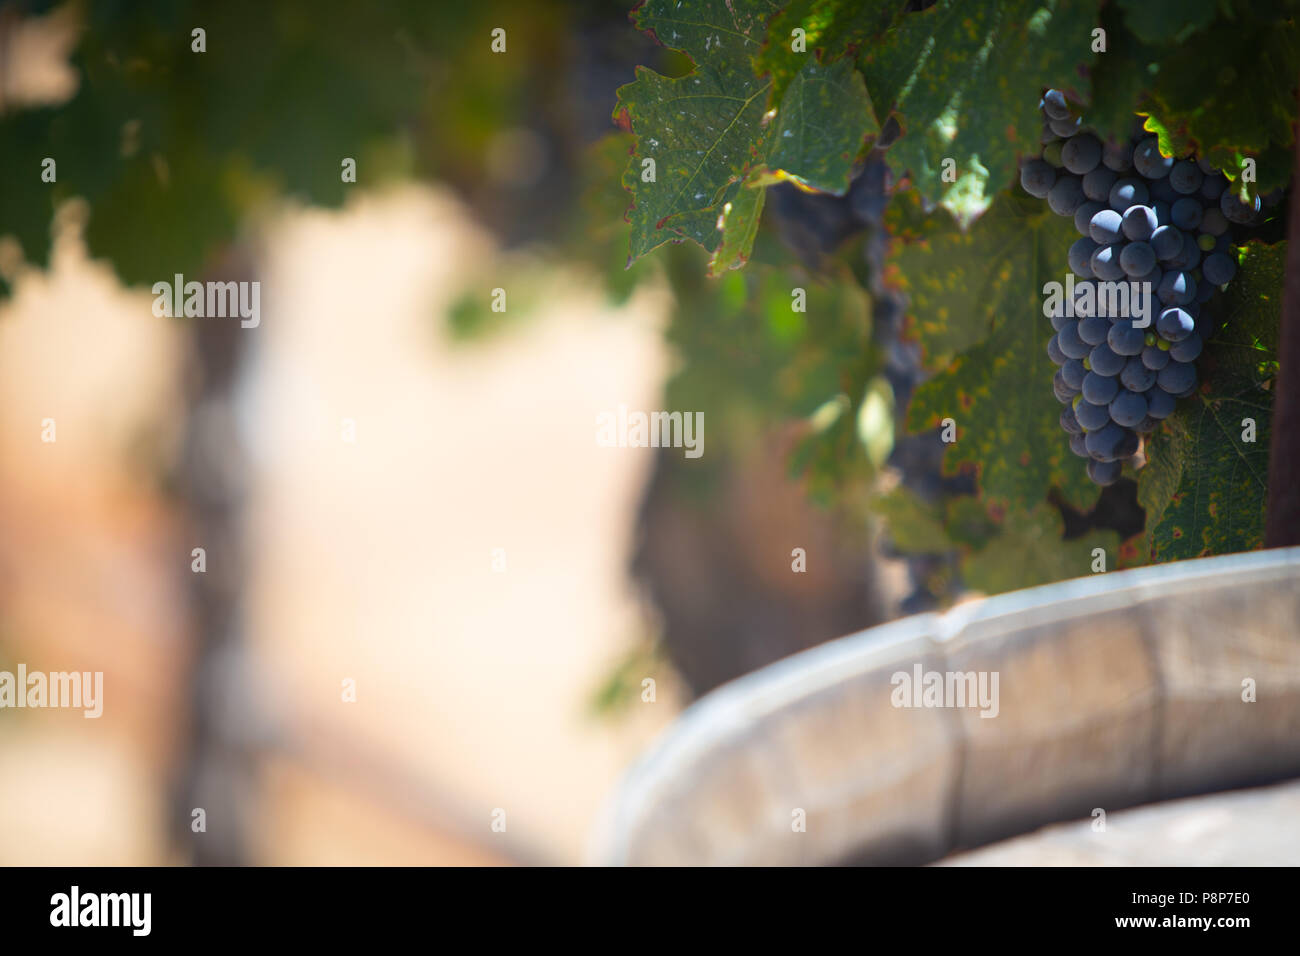 Grapes on a vine with Plenty of room for text - Stock Image